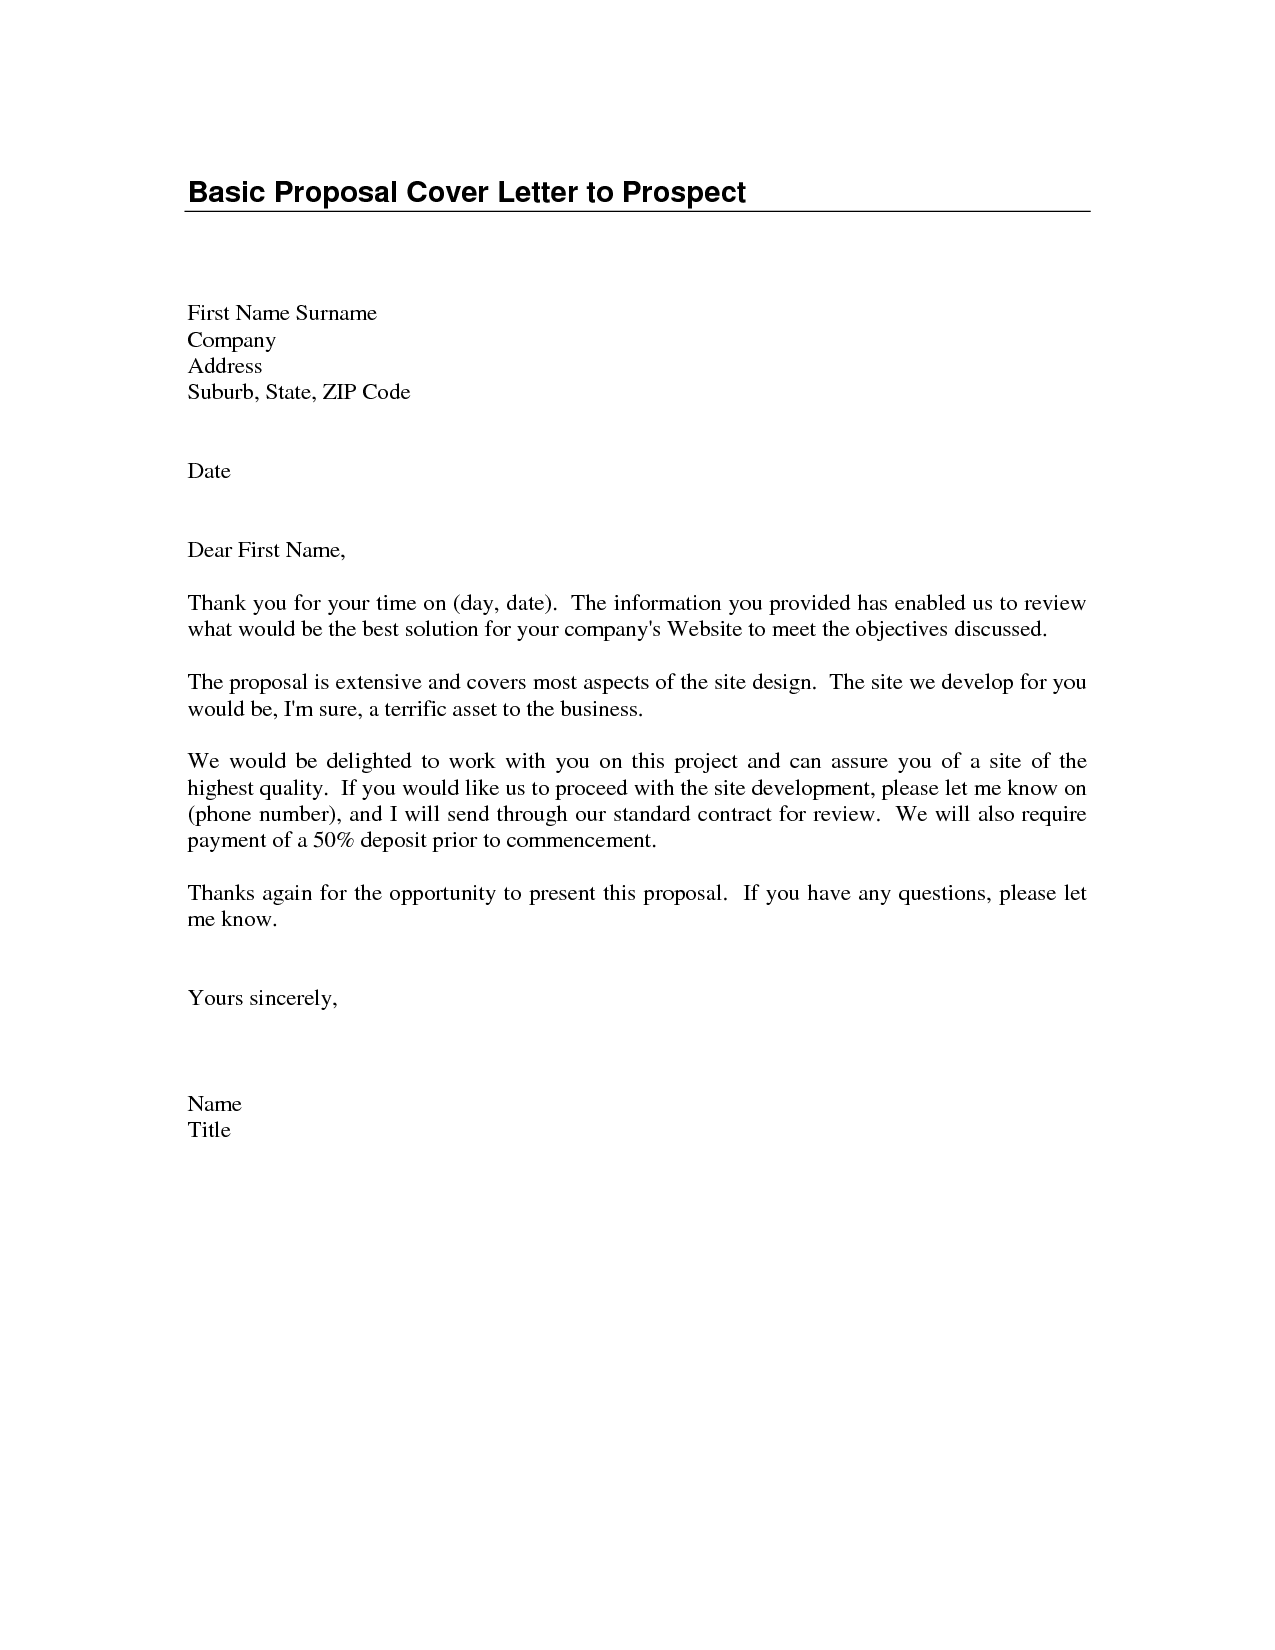 Basic Cover Letter Sample Basic Cover Letters Free Basicsimple Cover Letter Application Letter